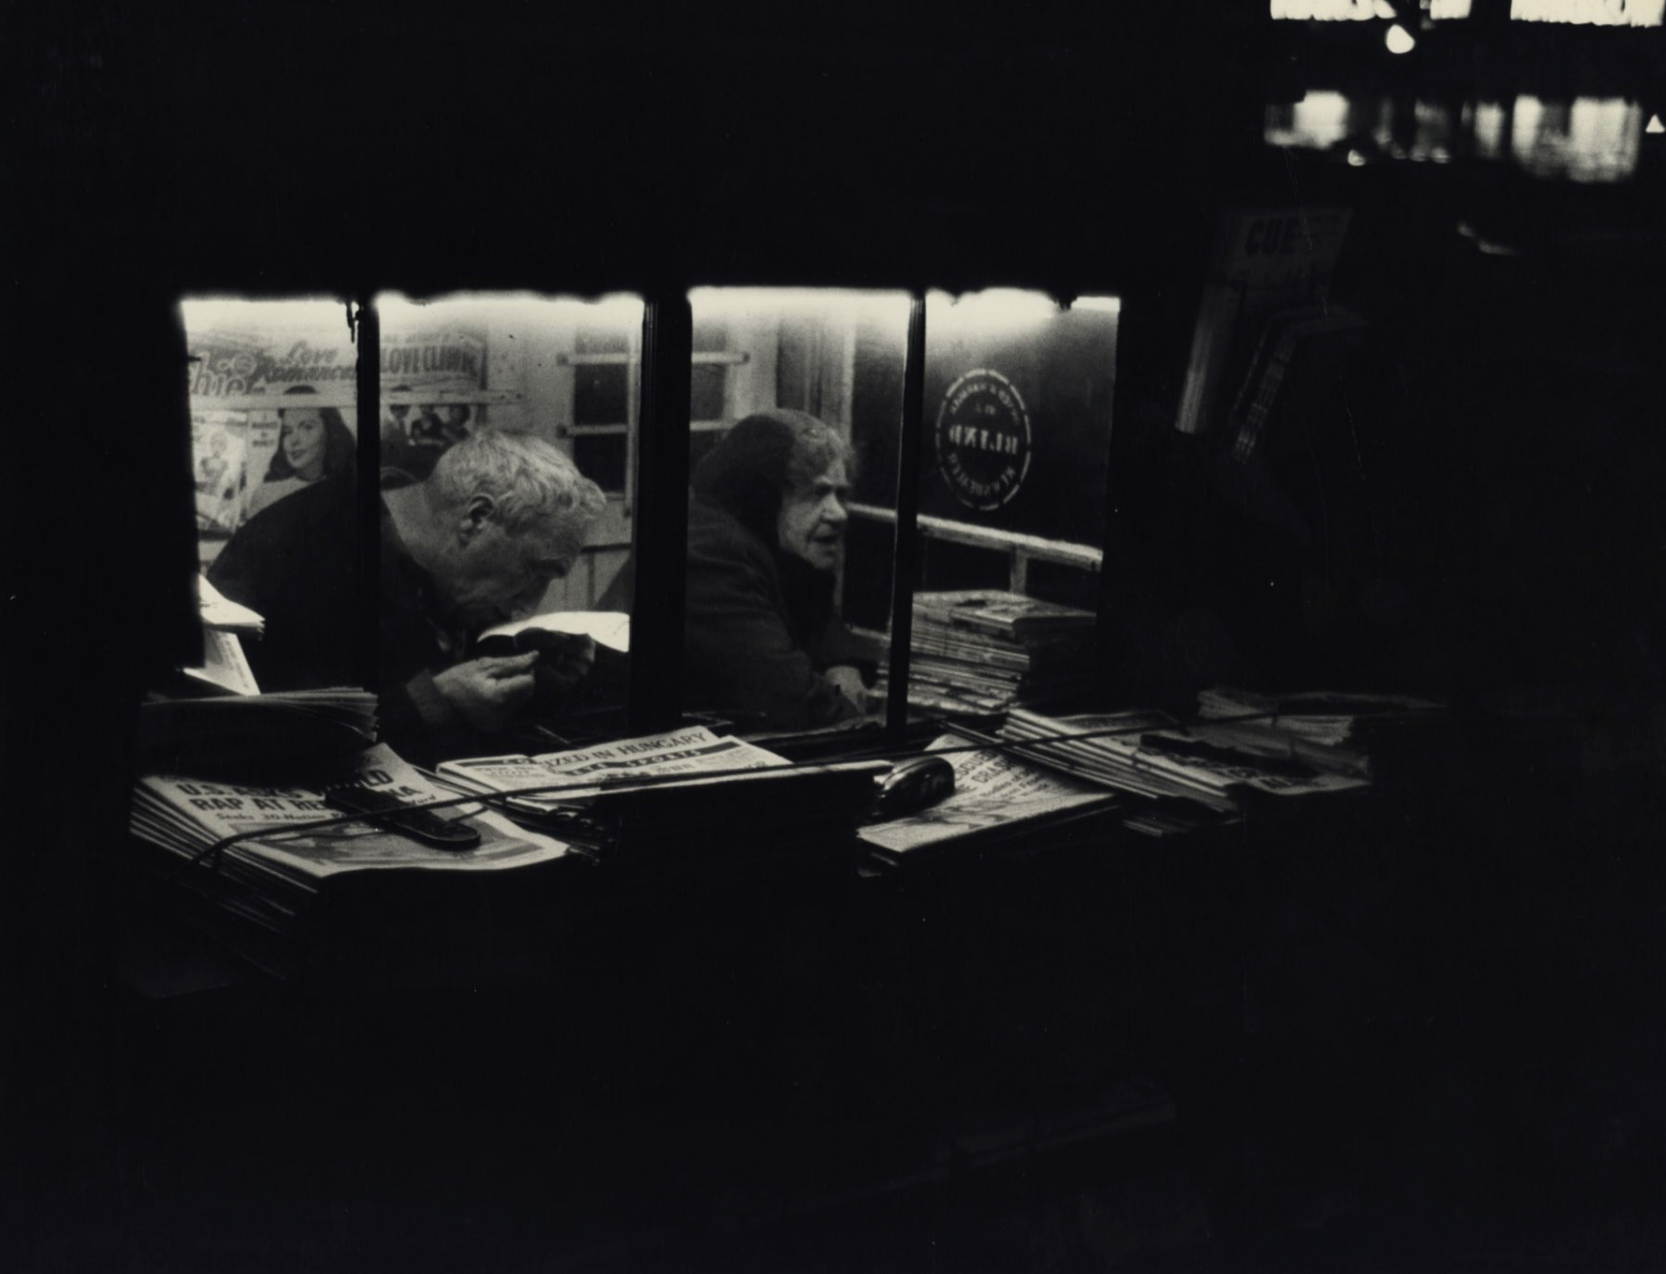 Dan Weiner,  Newsstand,  1950  Image courtesy of stevenkasher.com  Exhibition Dan Weiner: Vintage New York, 1940- 1959 on view at Steven Kasher Gallery